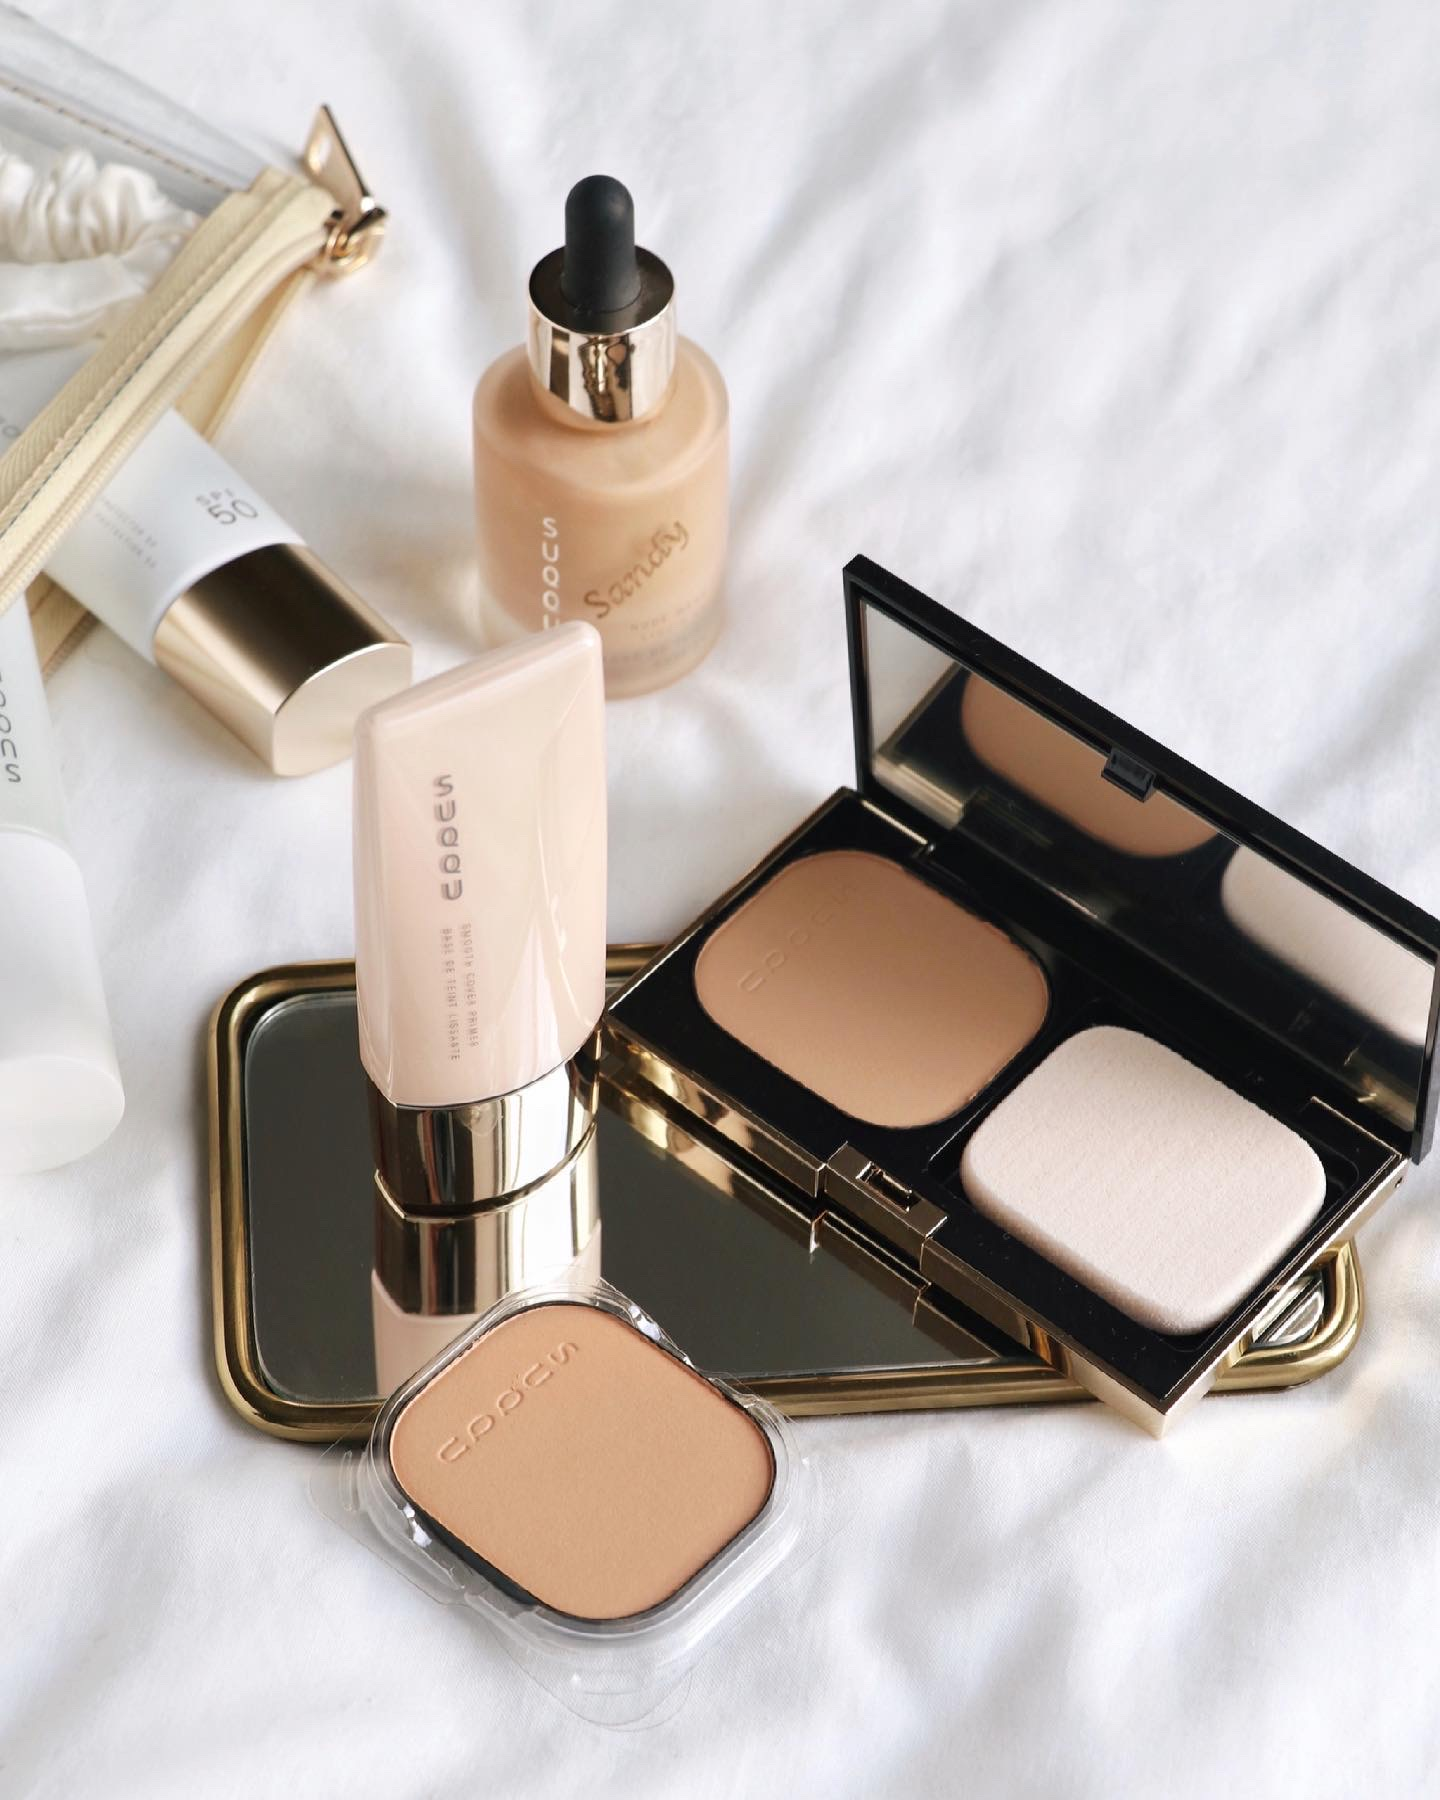 SUQQU Glow Powder Foundation